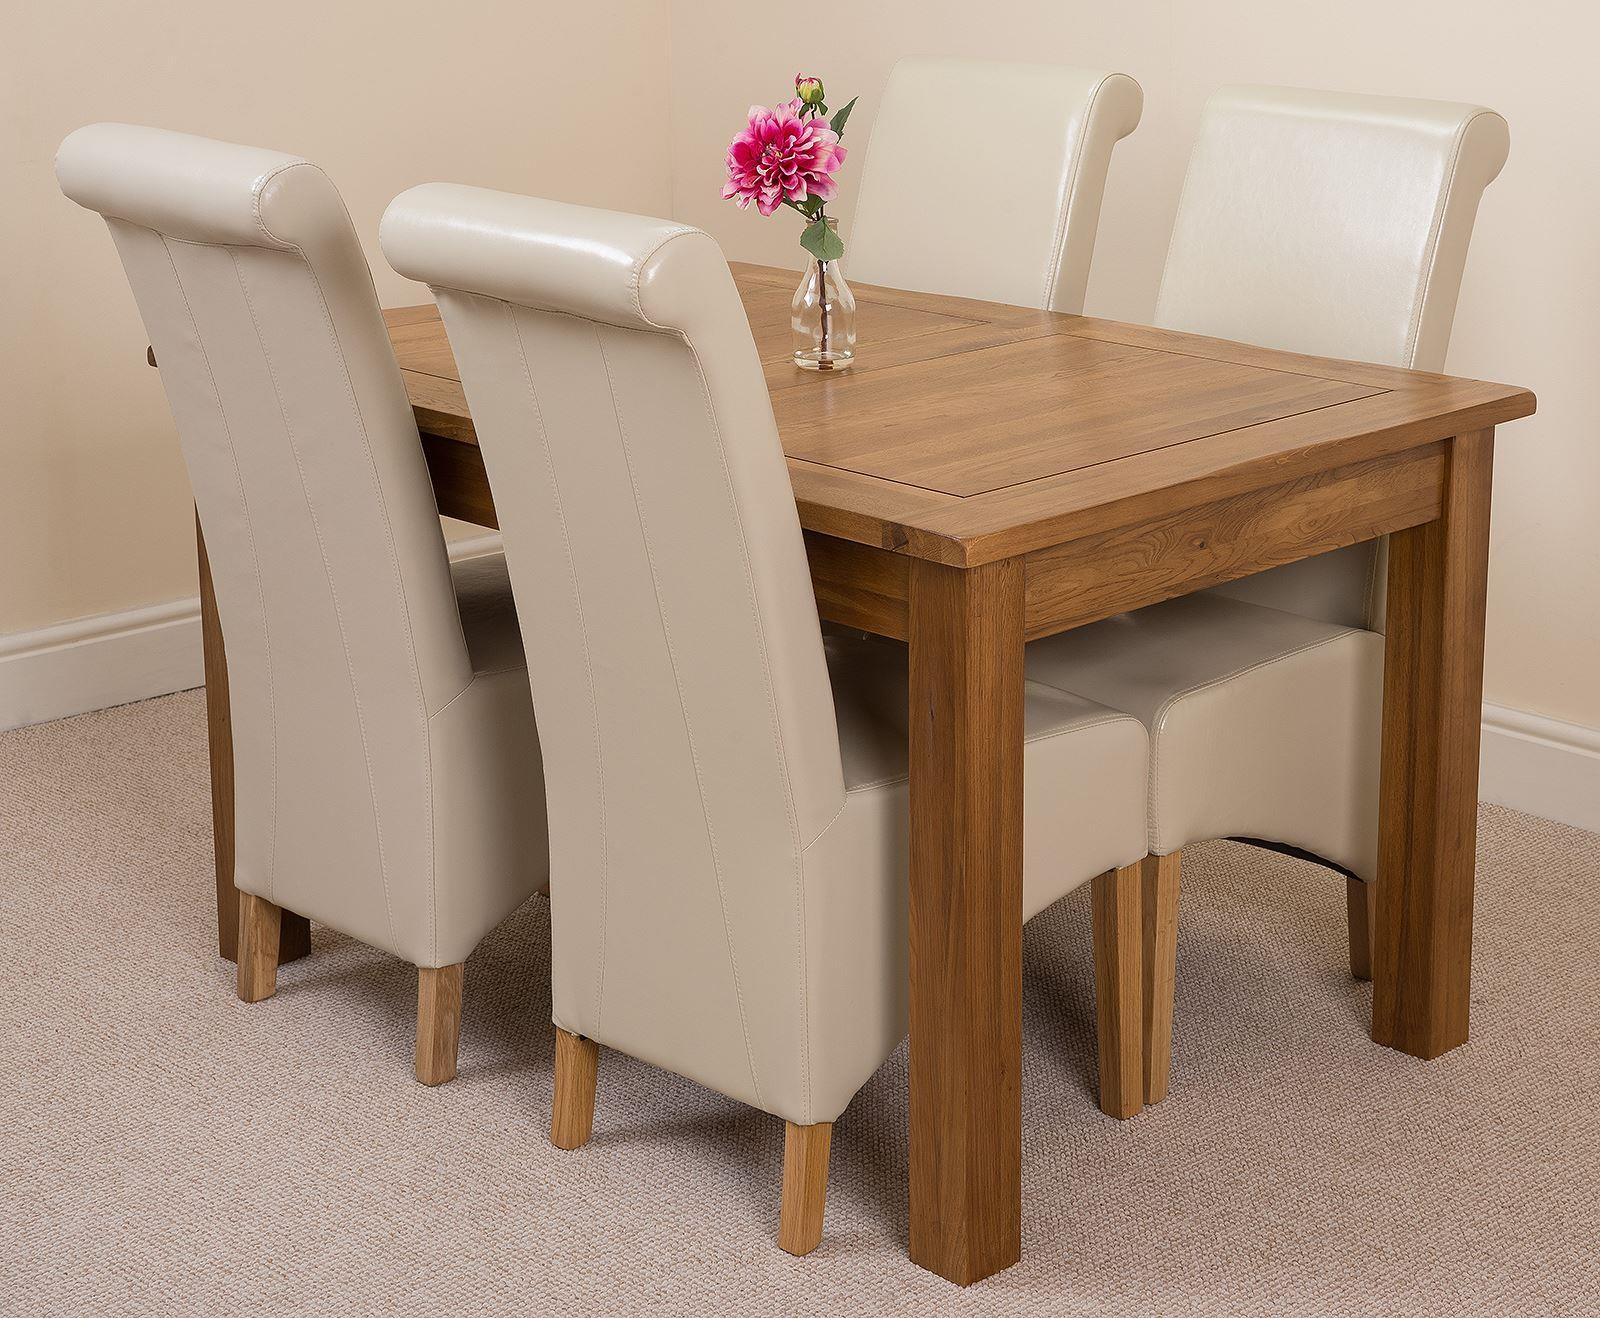 Cotswold Rustic Solid Oak 132cm-198cm Extending Farmhouse Dining Table with 4 Montana Dining Chairs [Ivory Leather]